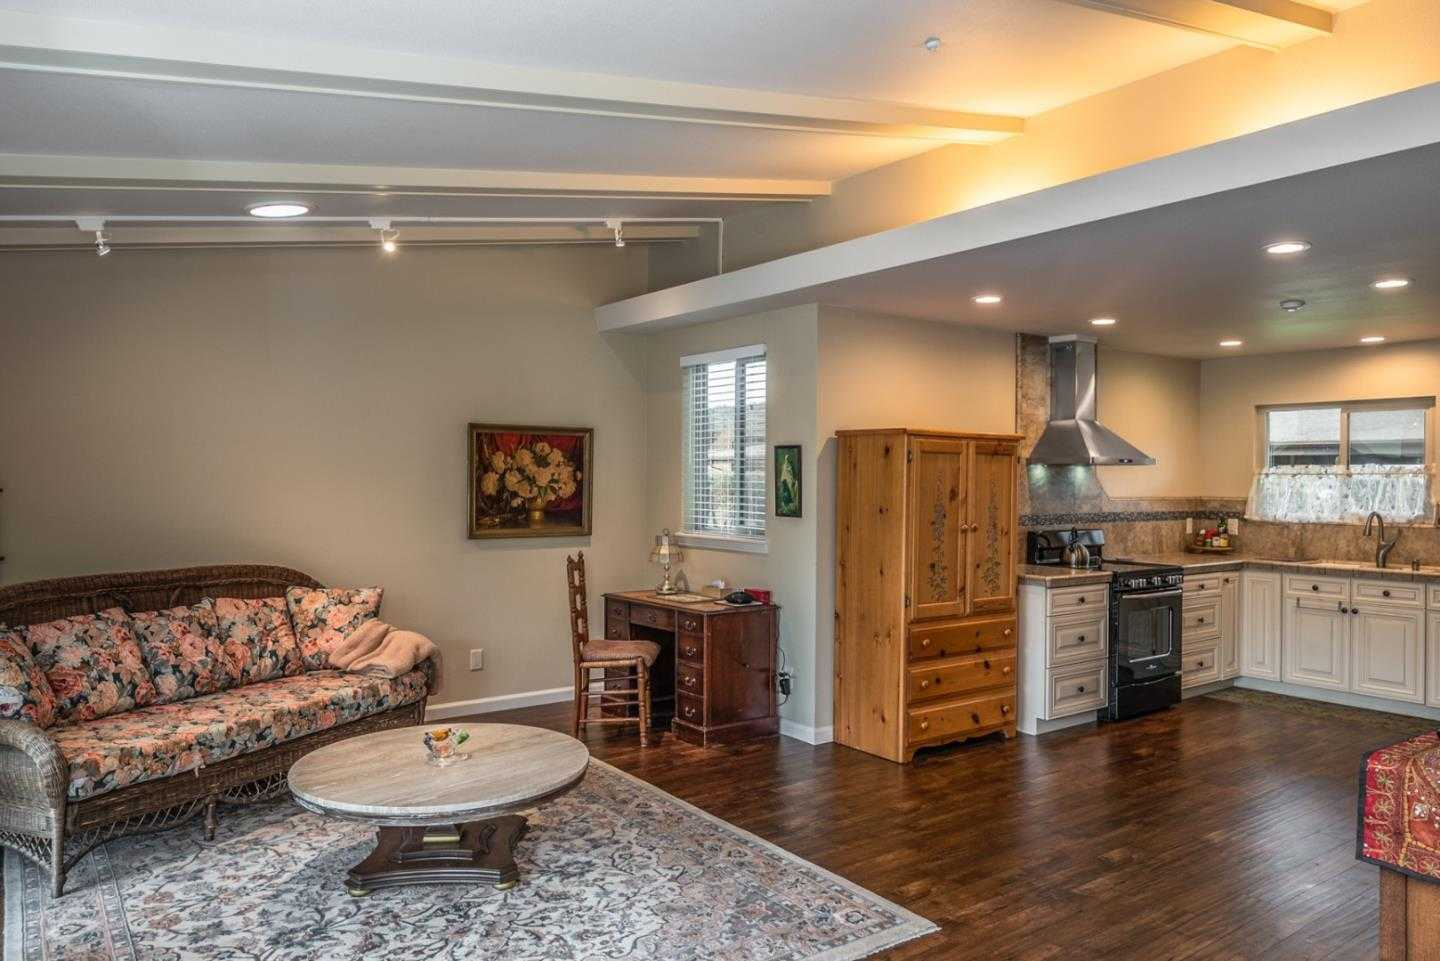 $439,900 - 1Br/1Ba -  for Sale in Carmel